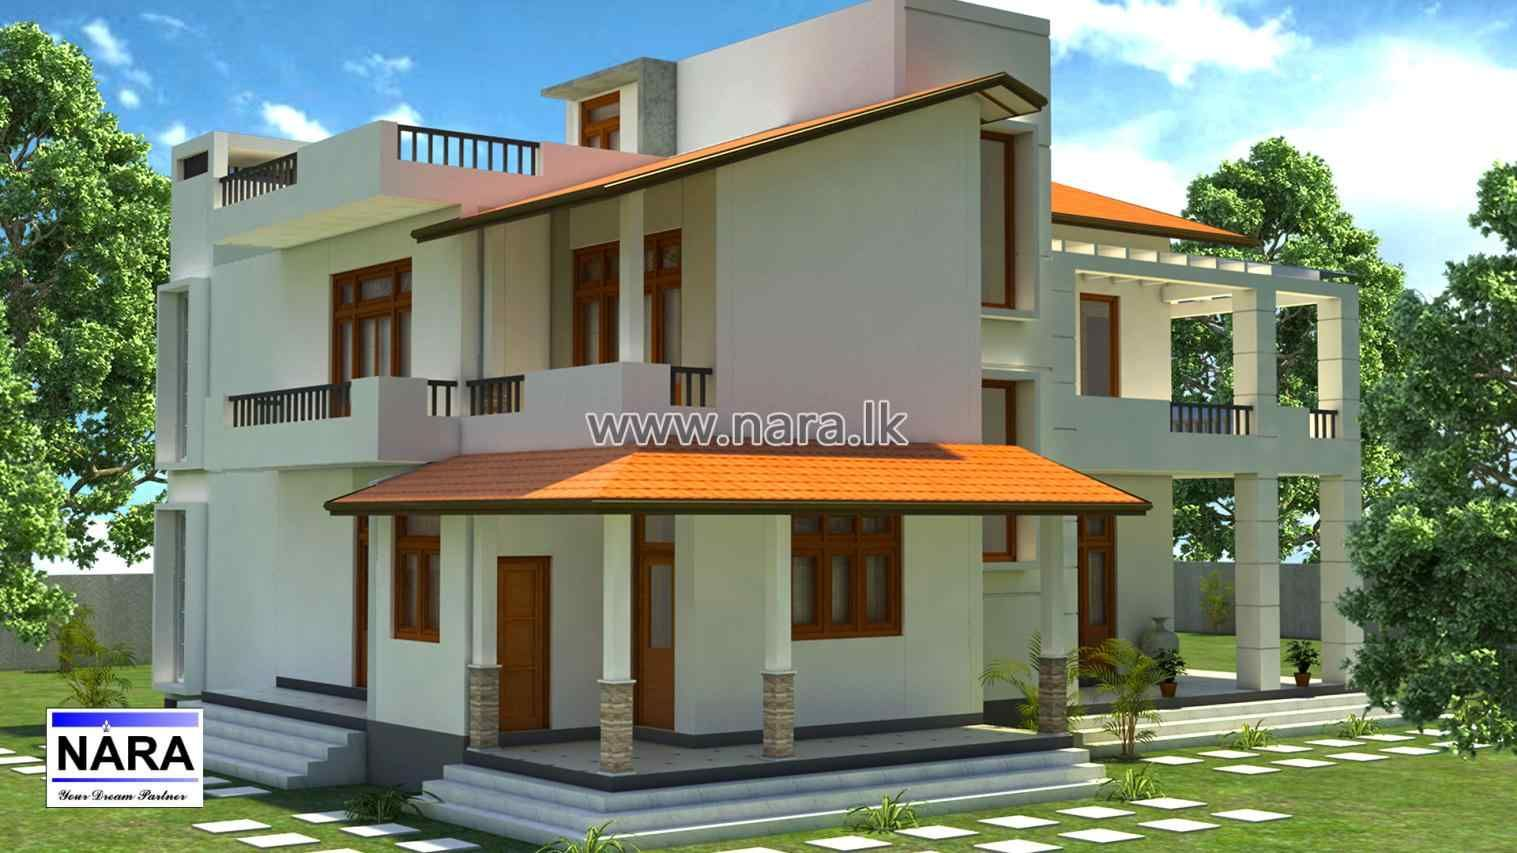 Roof Design In Sri Lanka Gallery Home Roof Ideas Roof Design Modern House Plans Classic House Design